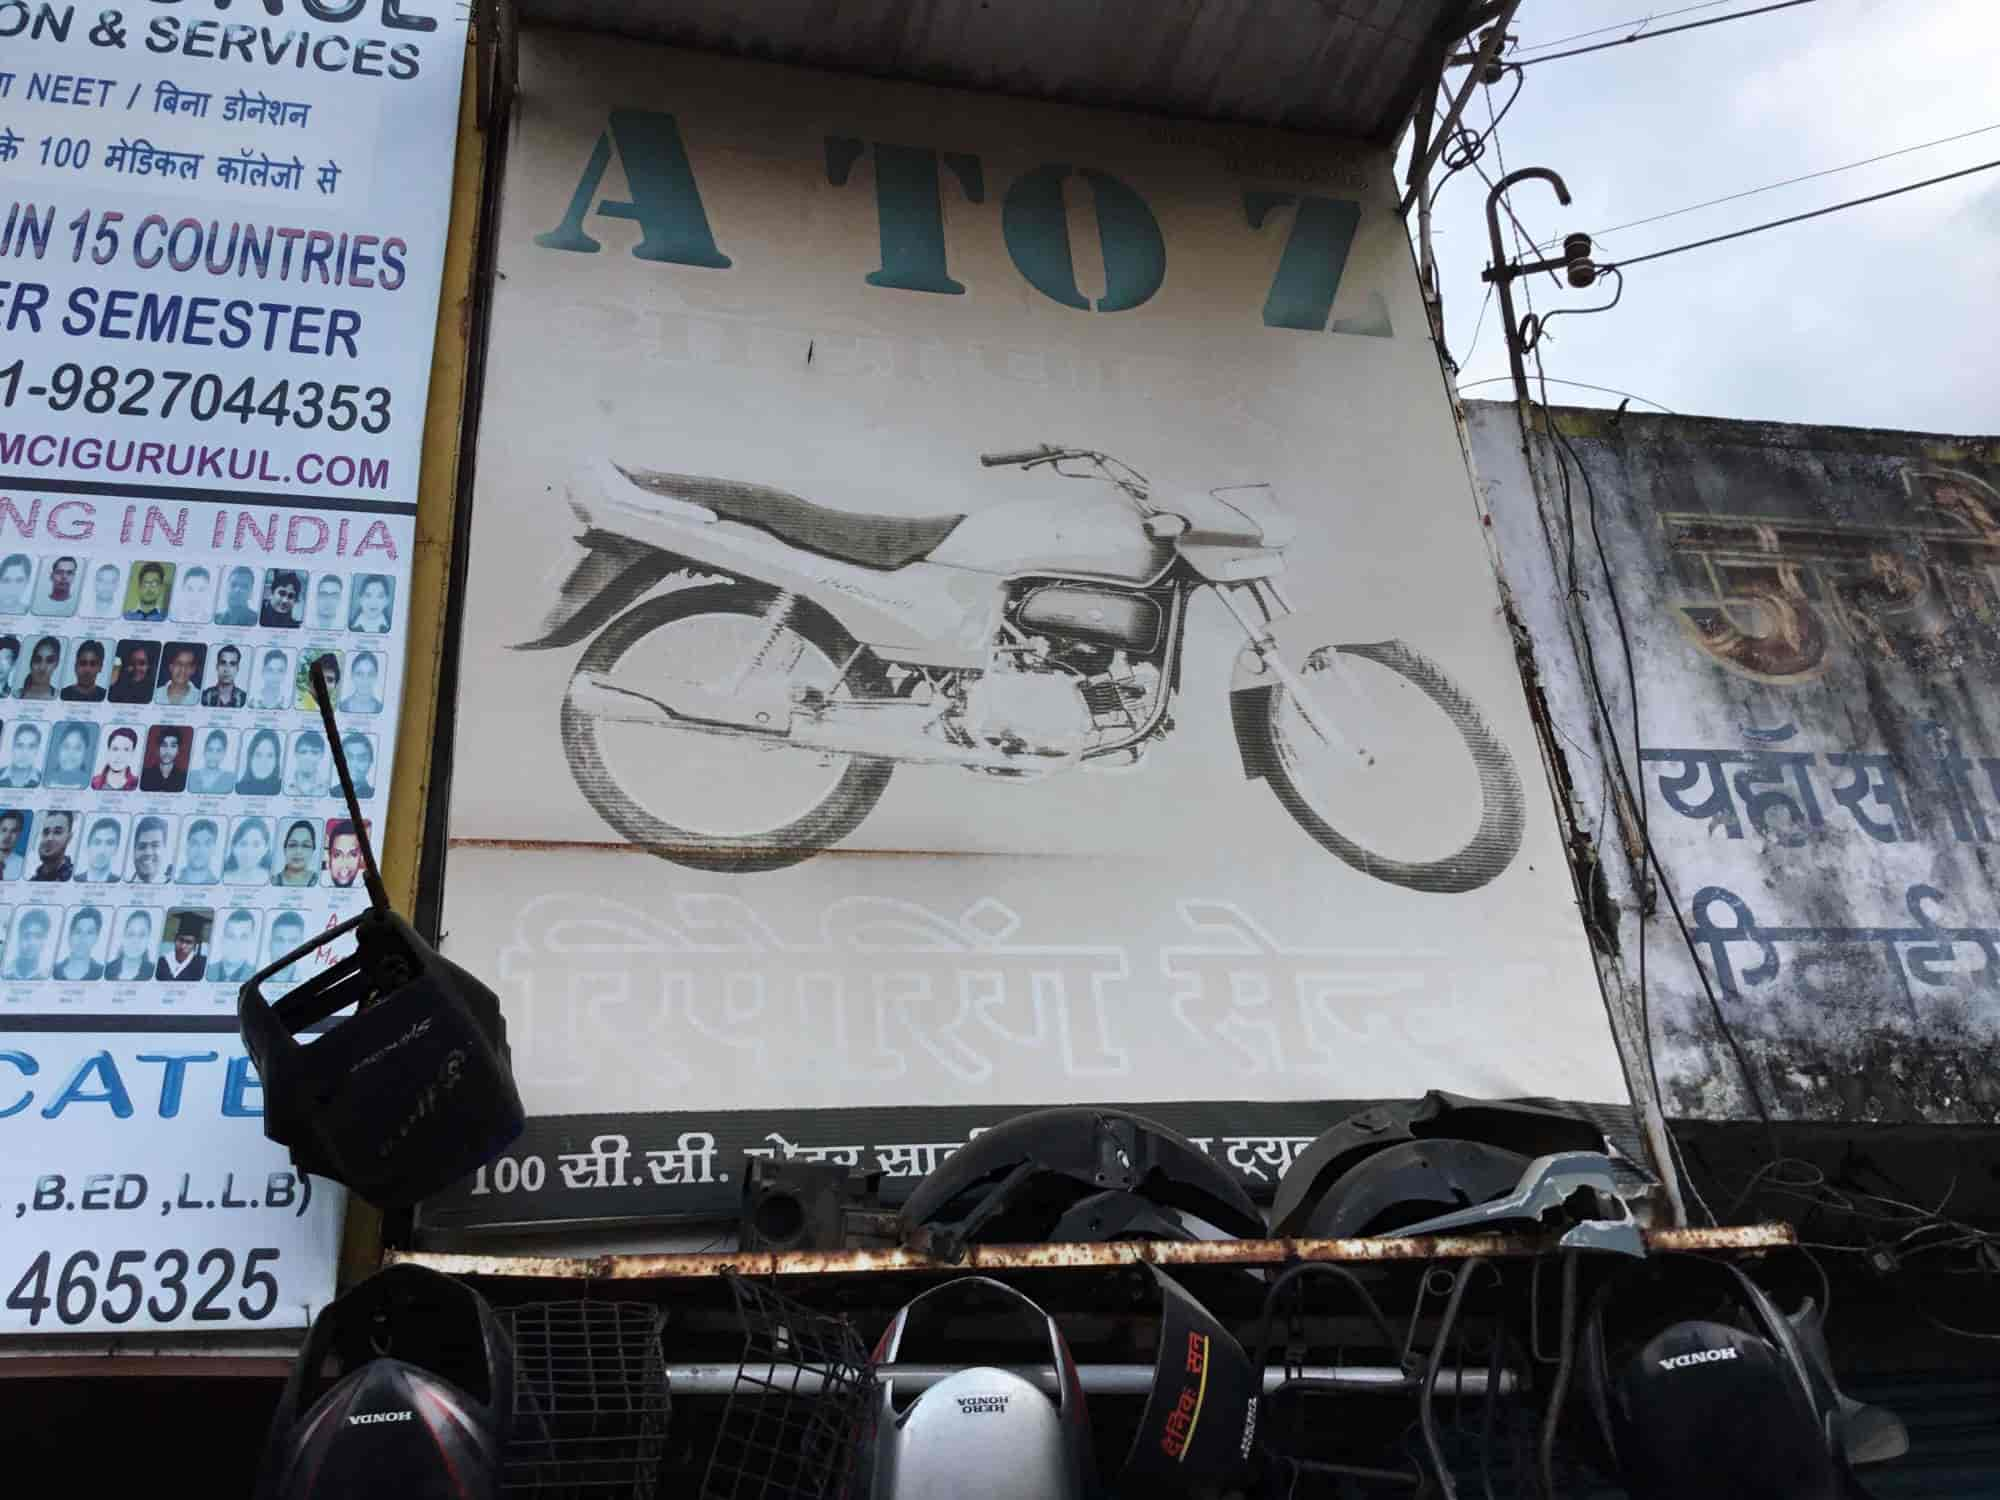 A To Z Auto Parts >> A To Z Auto Parts Tt Nagar Automobile Part Dealers In Bhopal